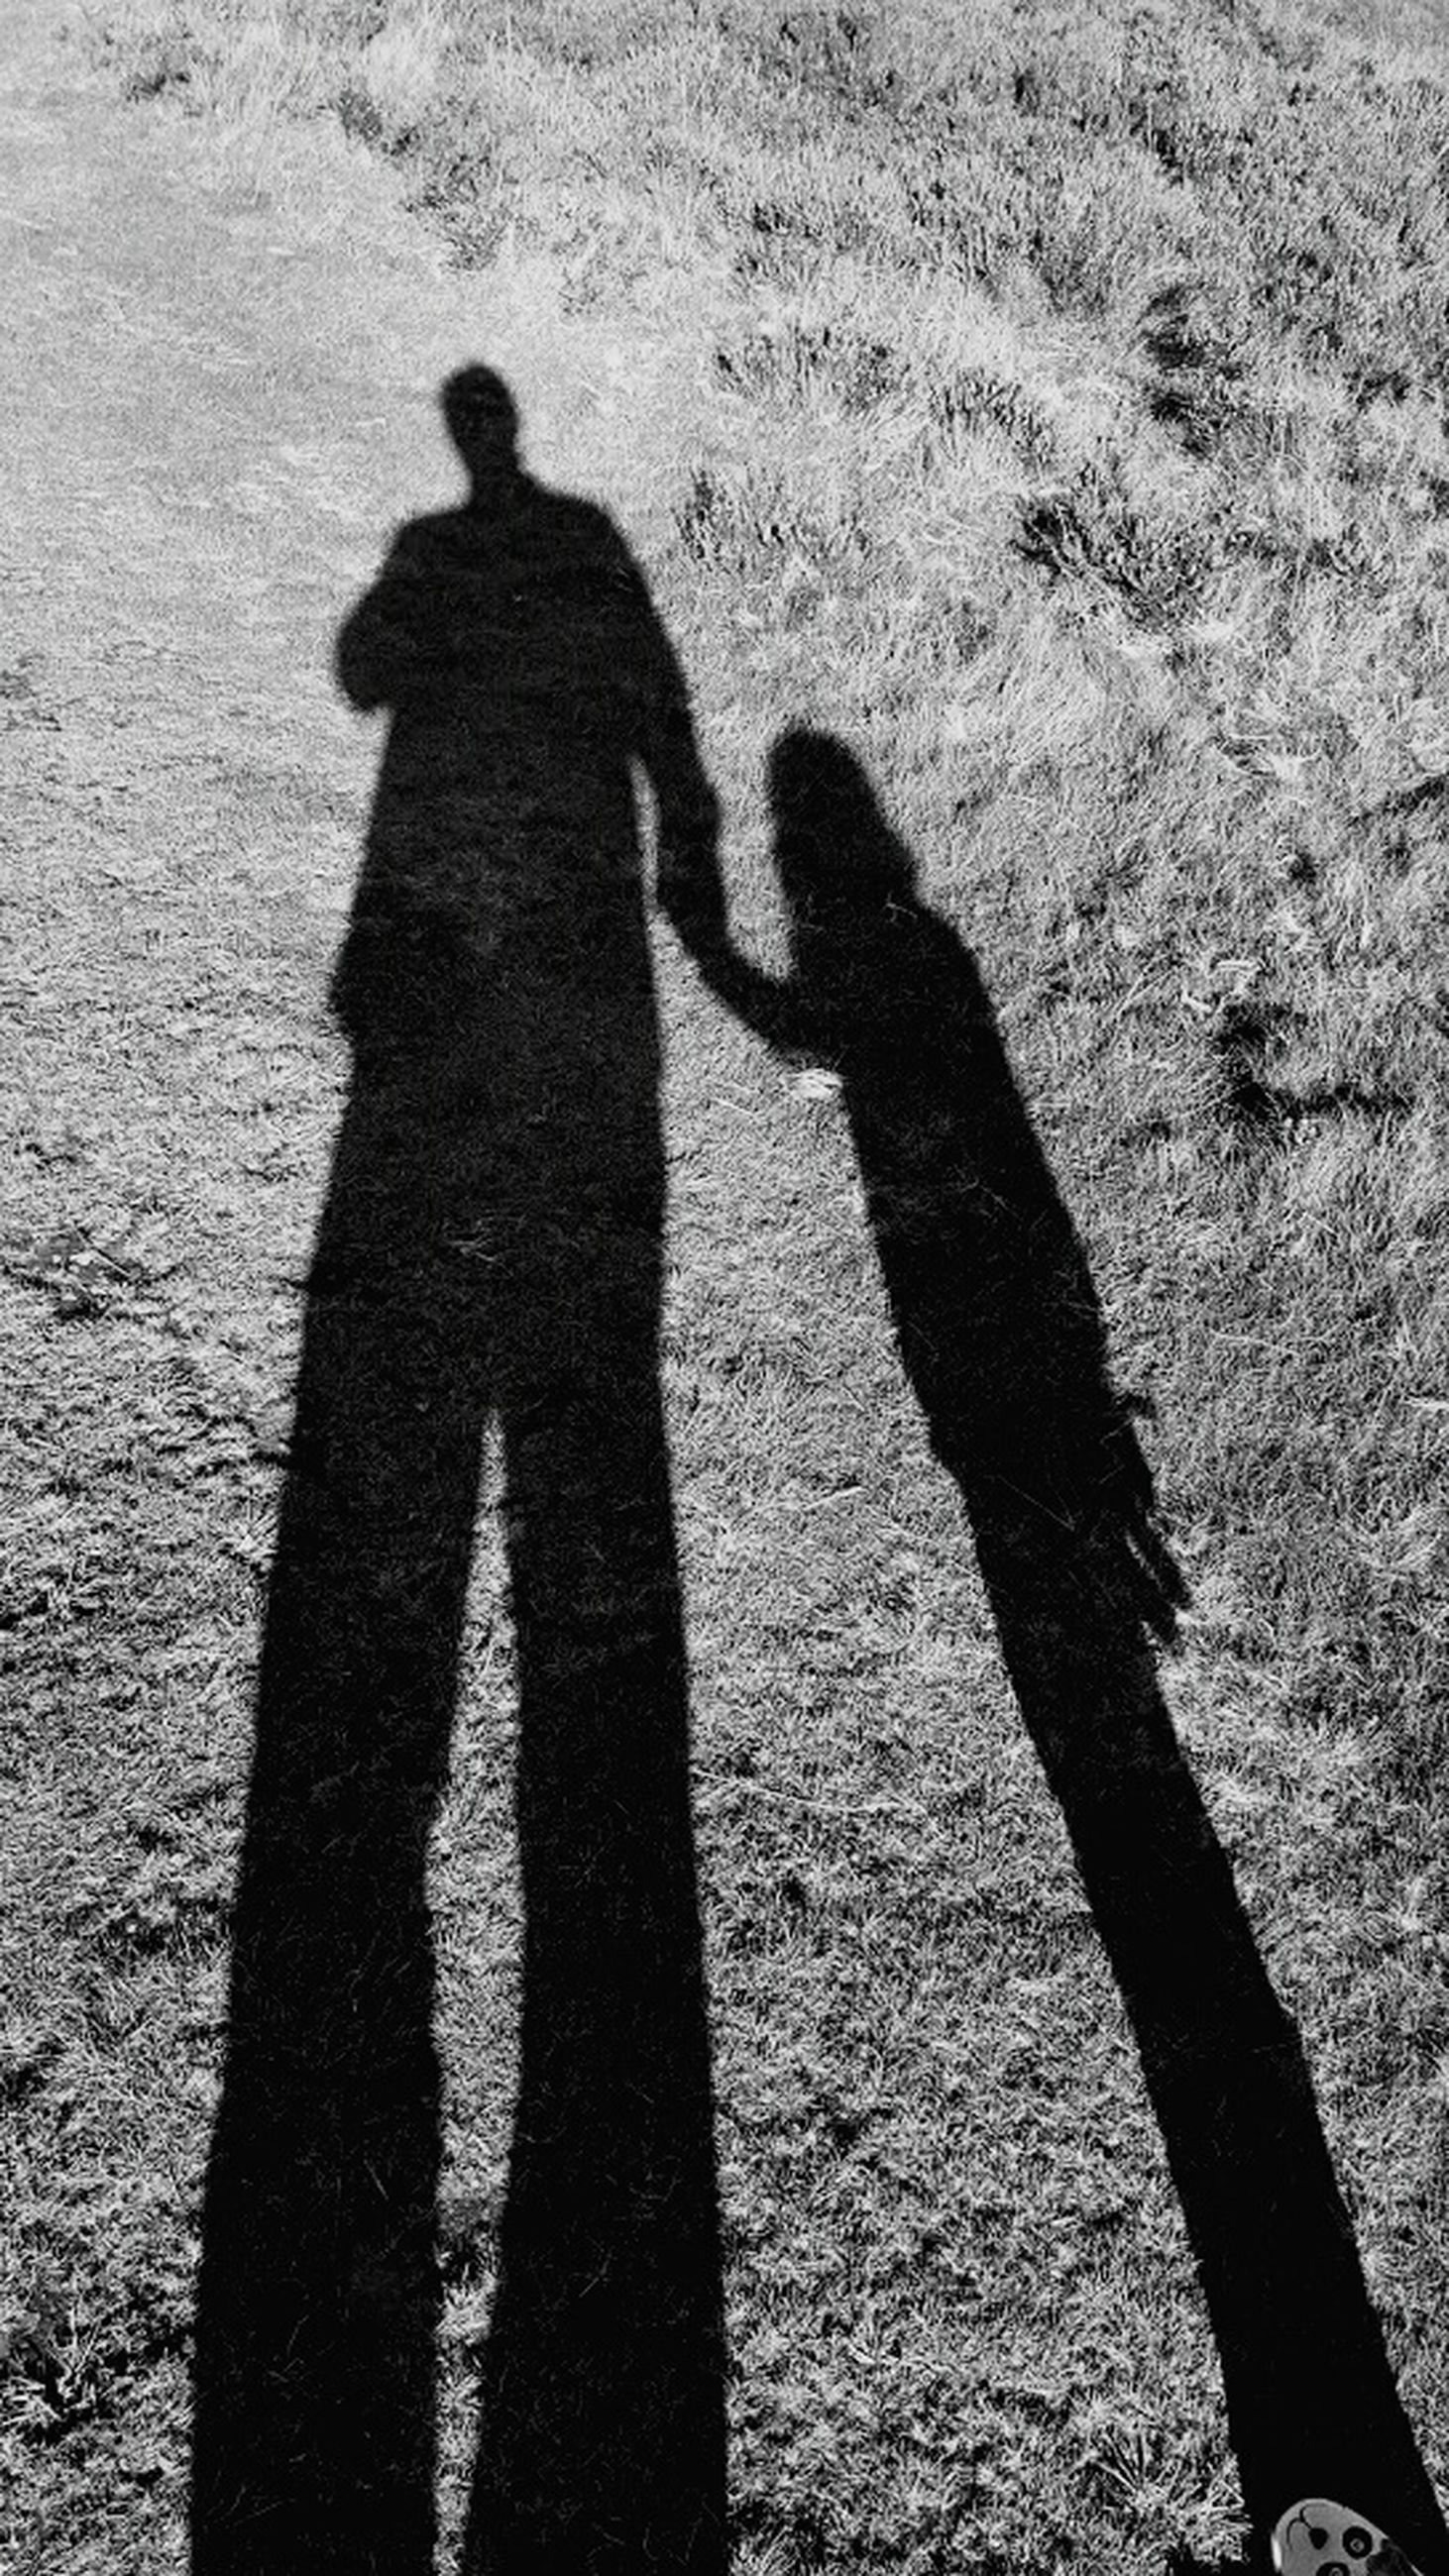 shadow, sunlight, high angle view, leisure activity, lifestyles, standing, ground, field, focus on shadow, park - man made space, day, outdoors, person, grassy